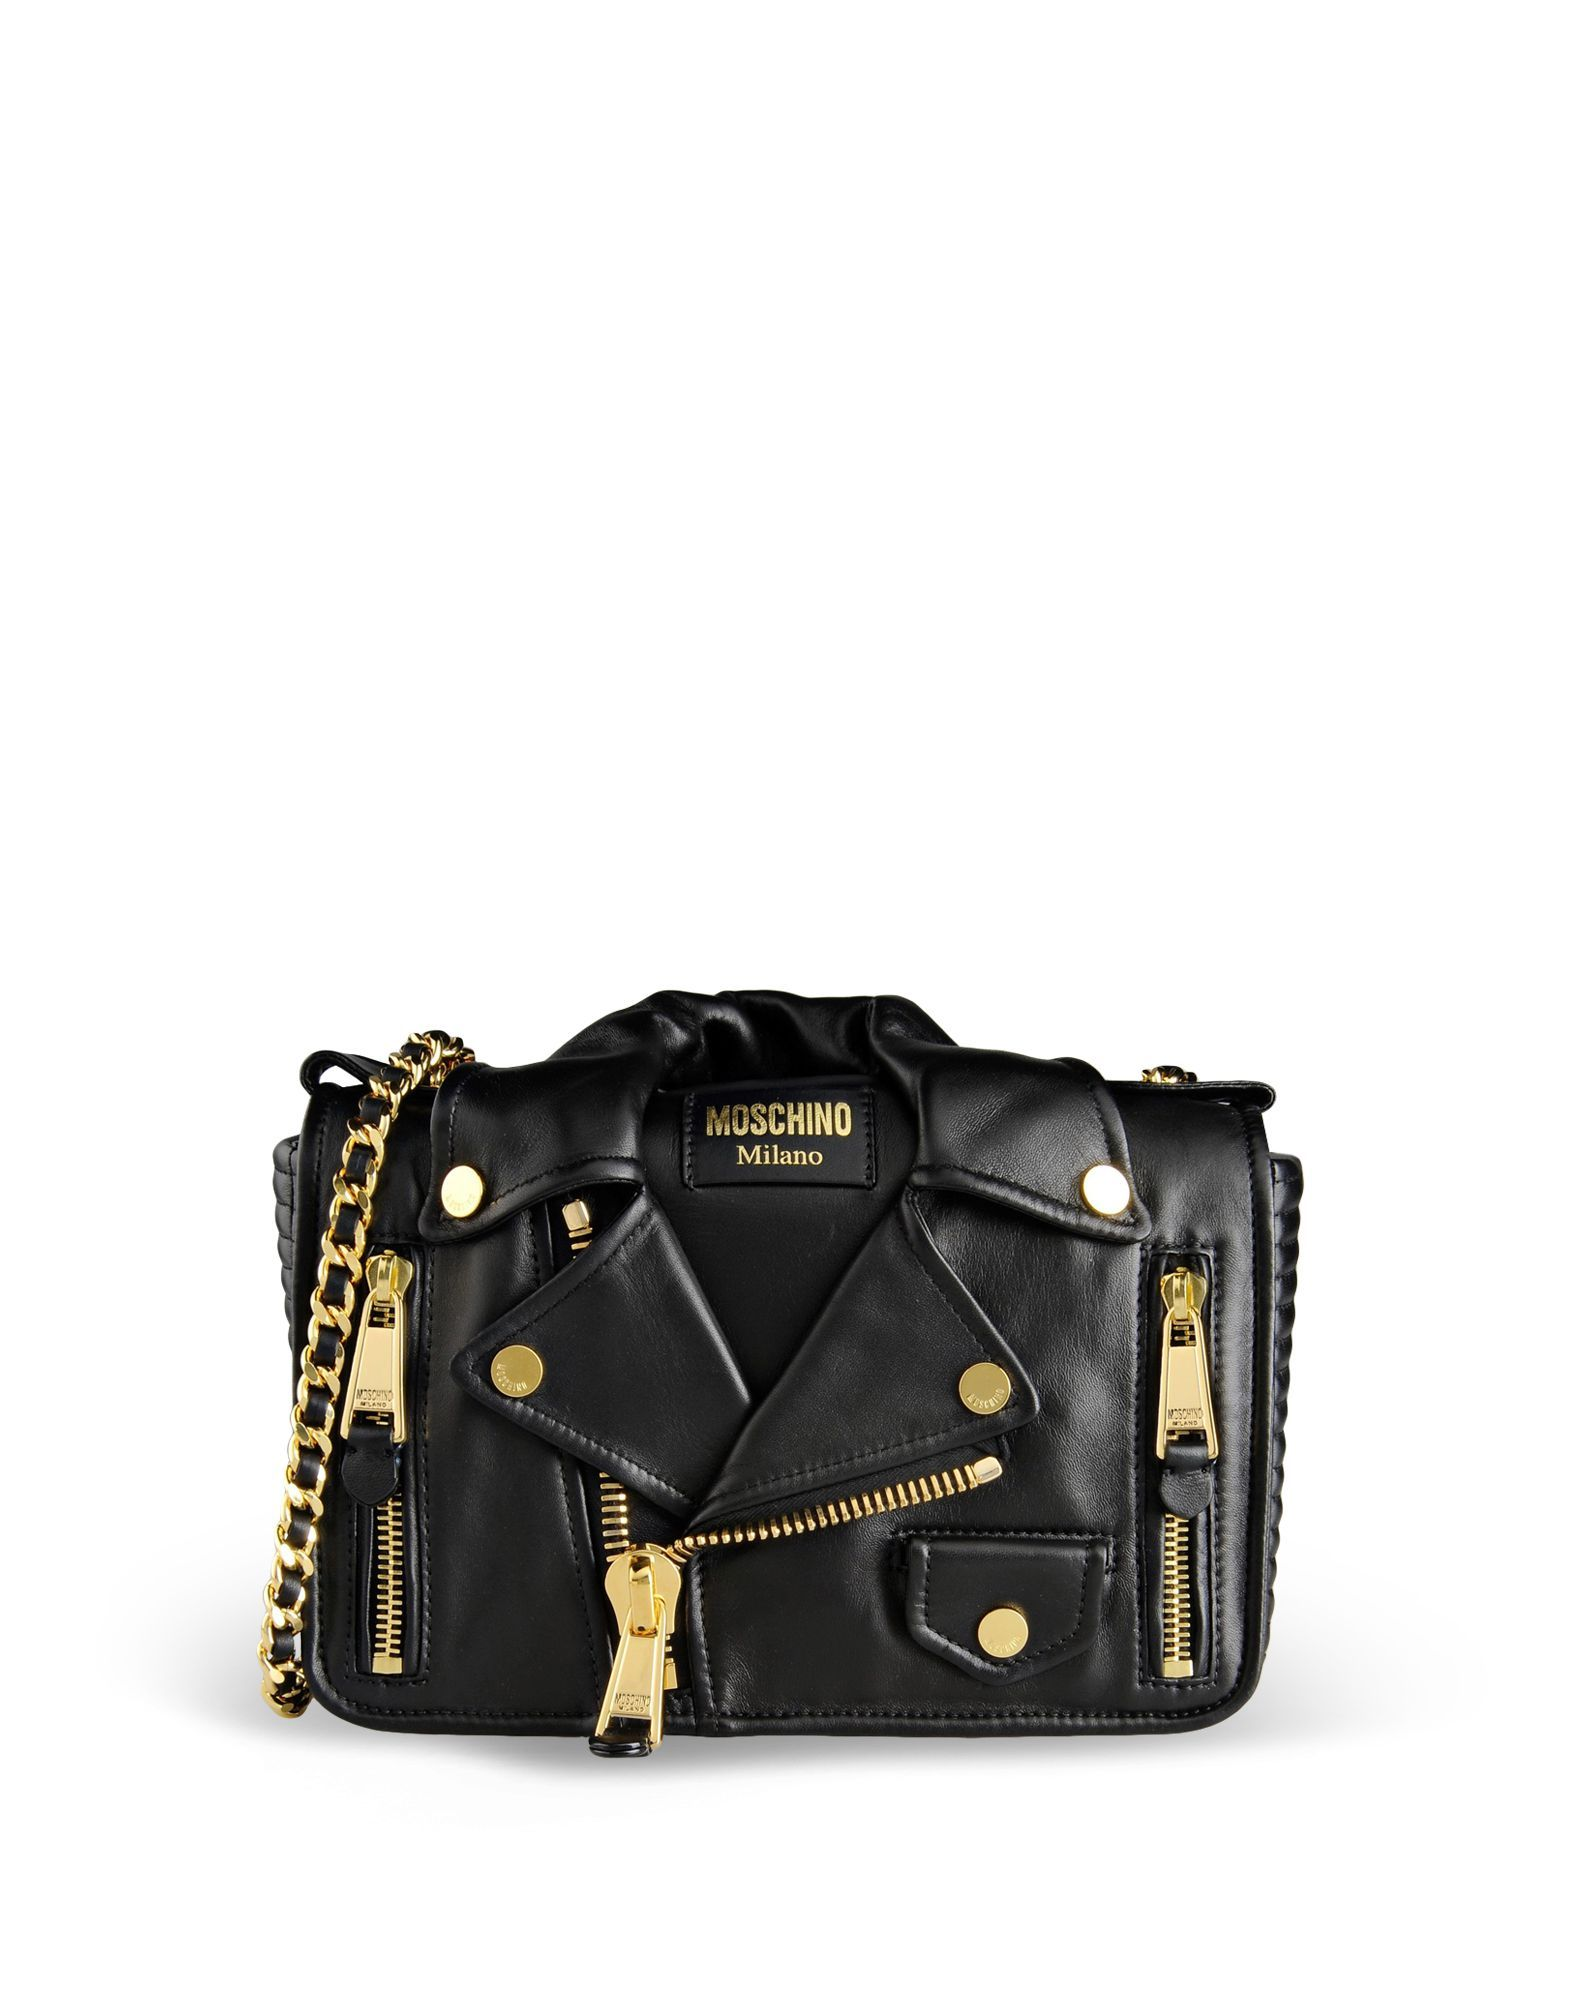 Small Leather Bag Women - Moschino Online Store  11e94102bf0